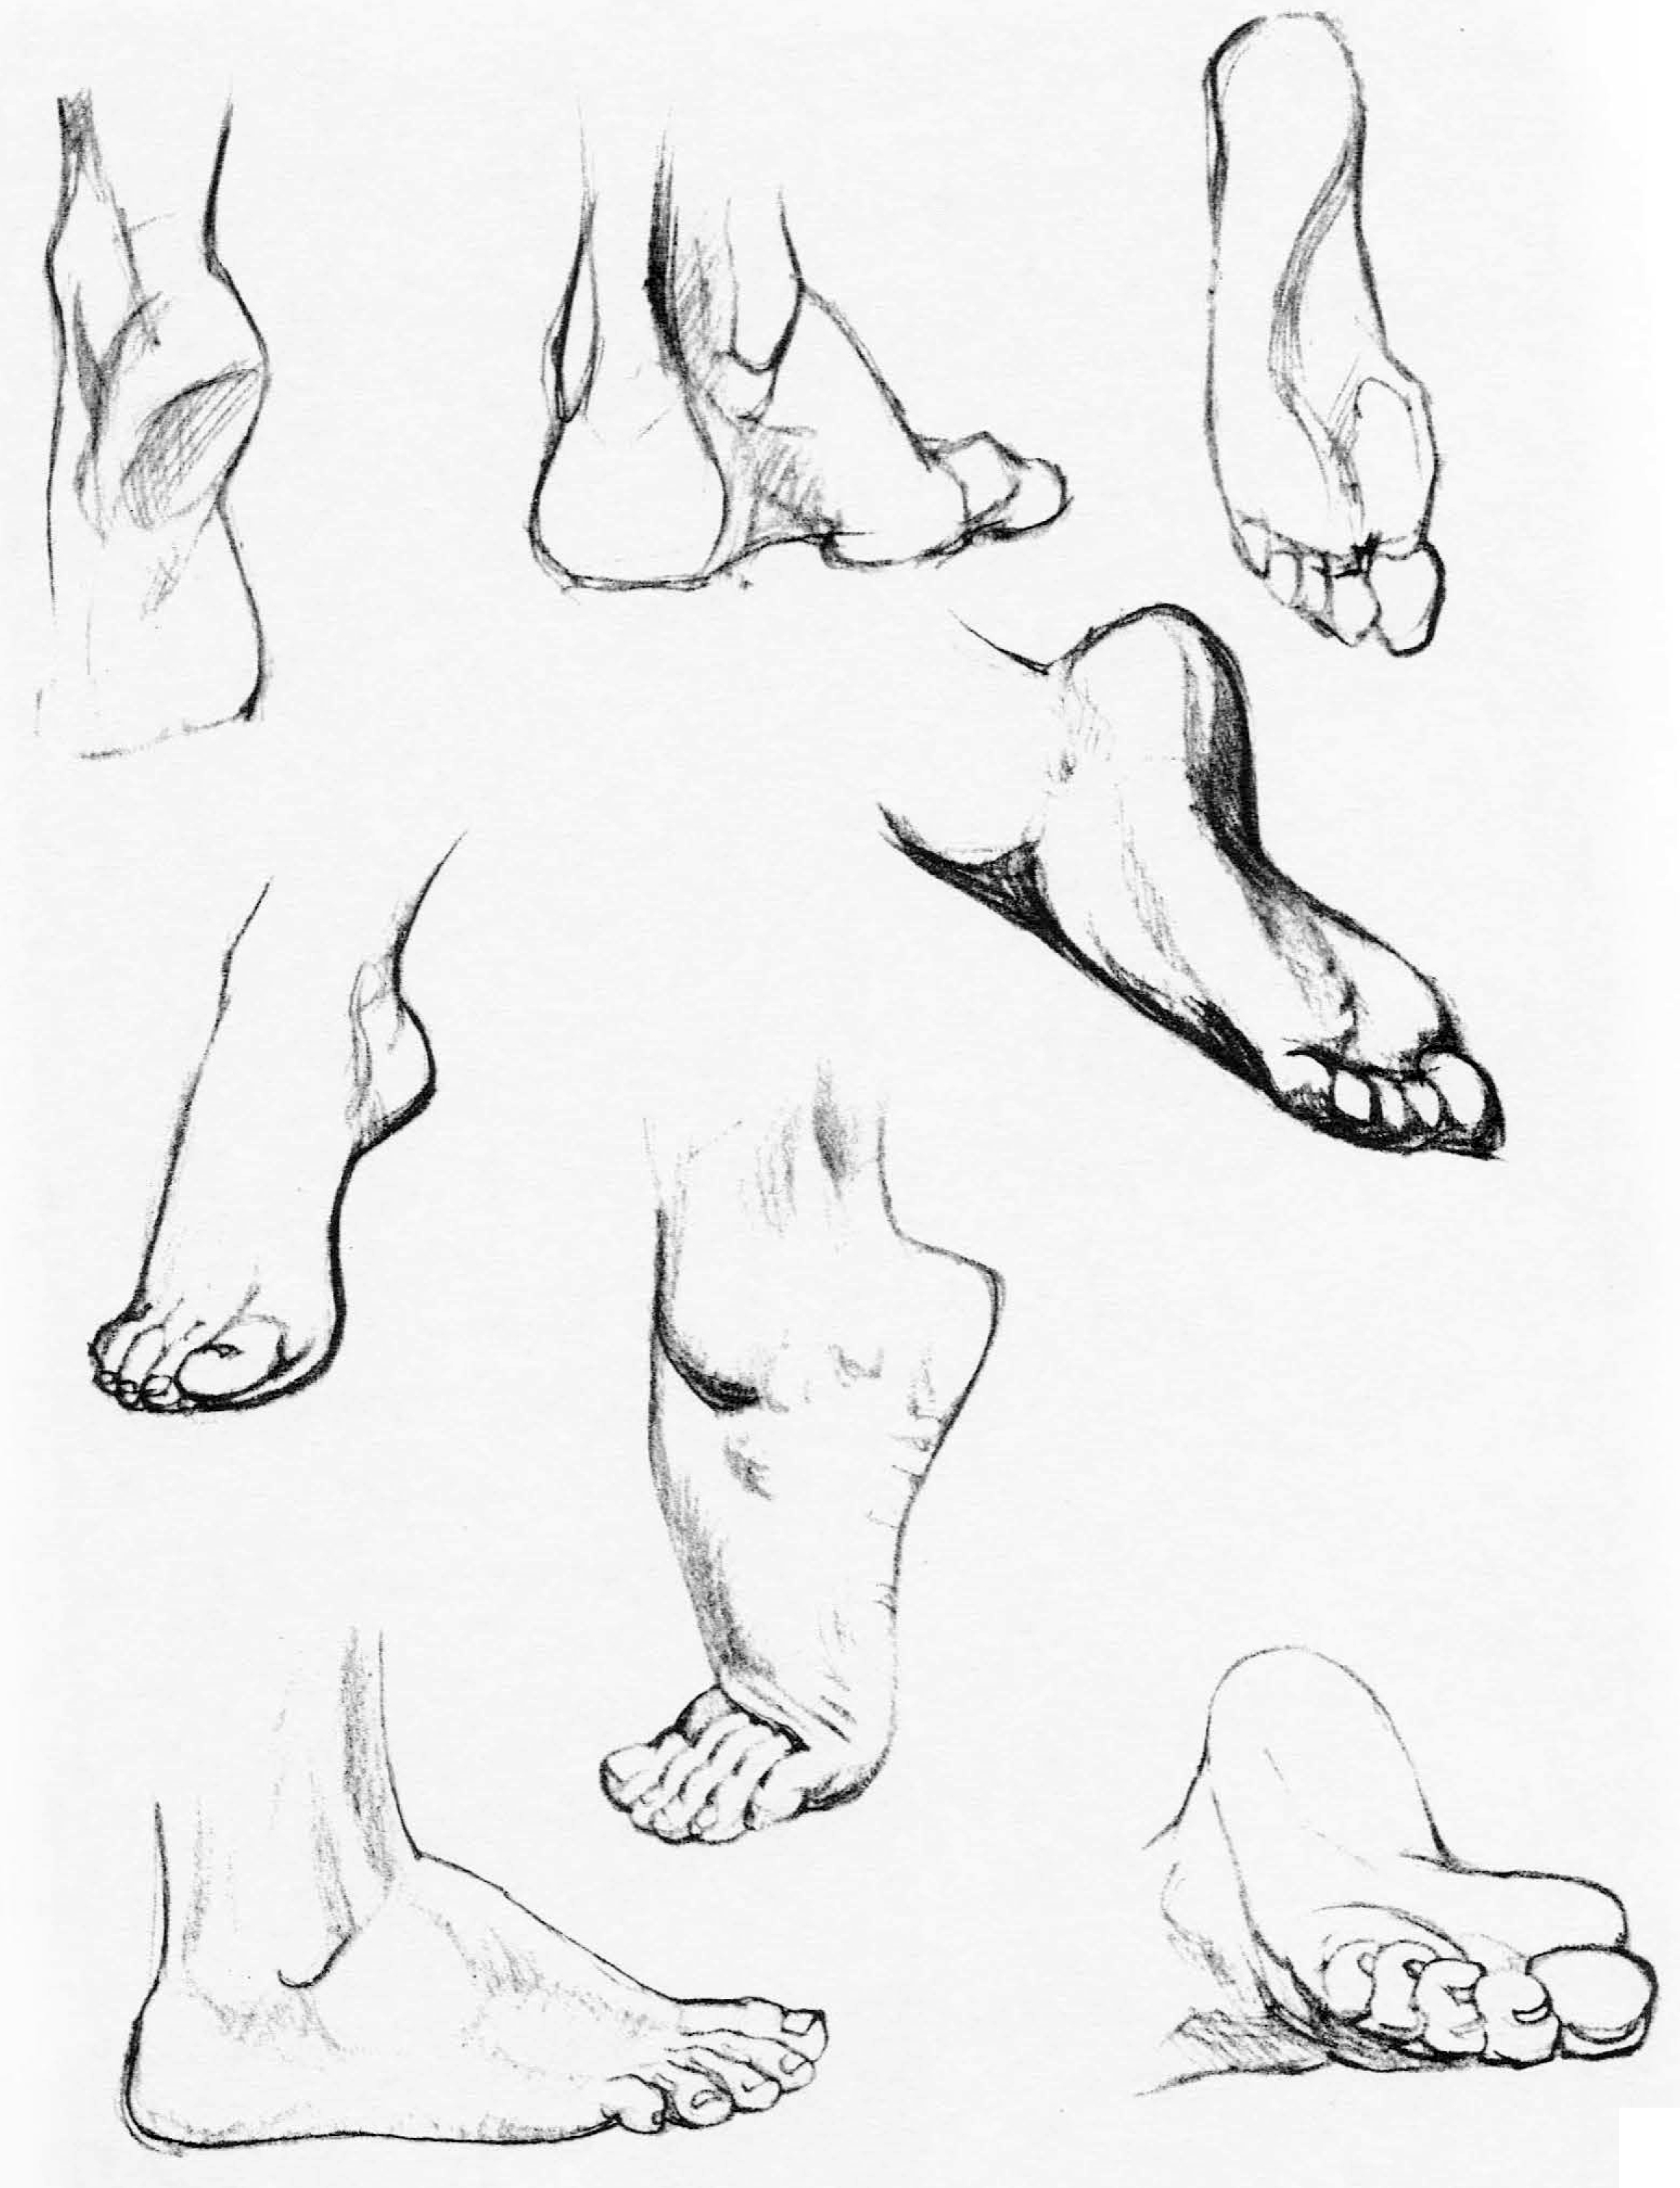 learn how to draw feet and legs